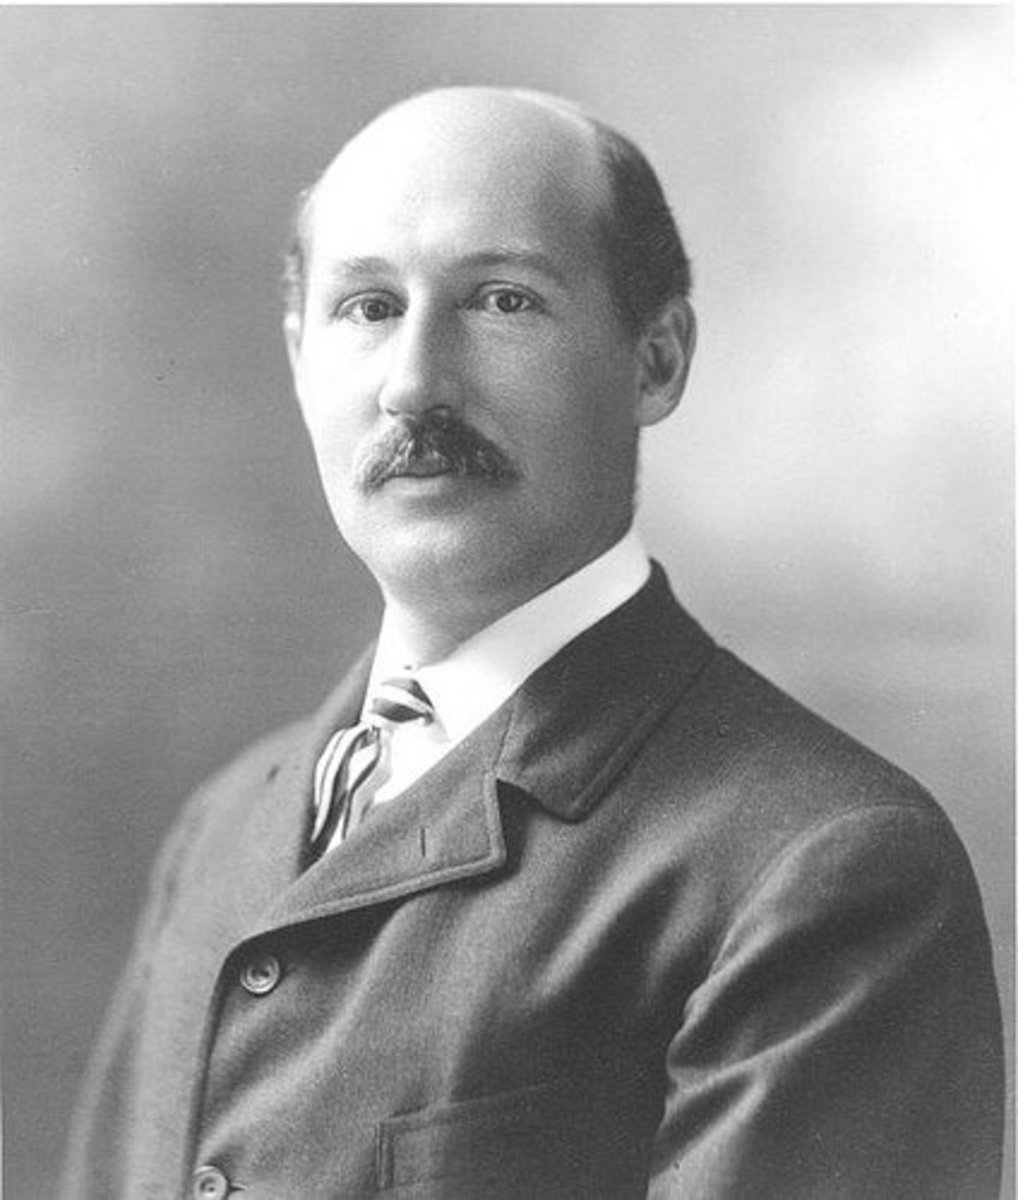 Walter Camp: The Father of American Football